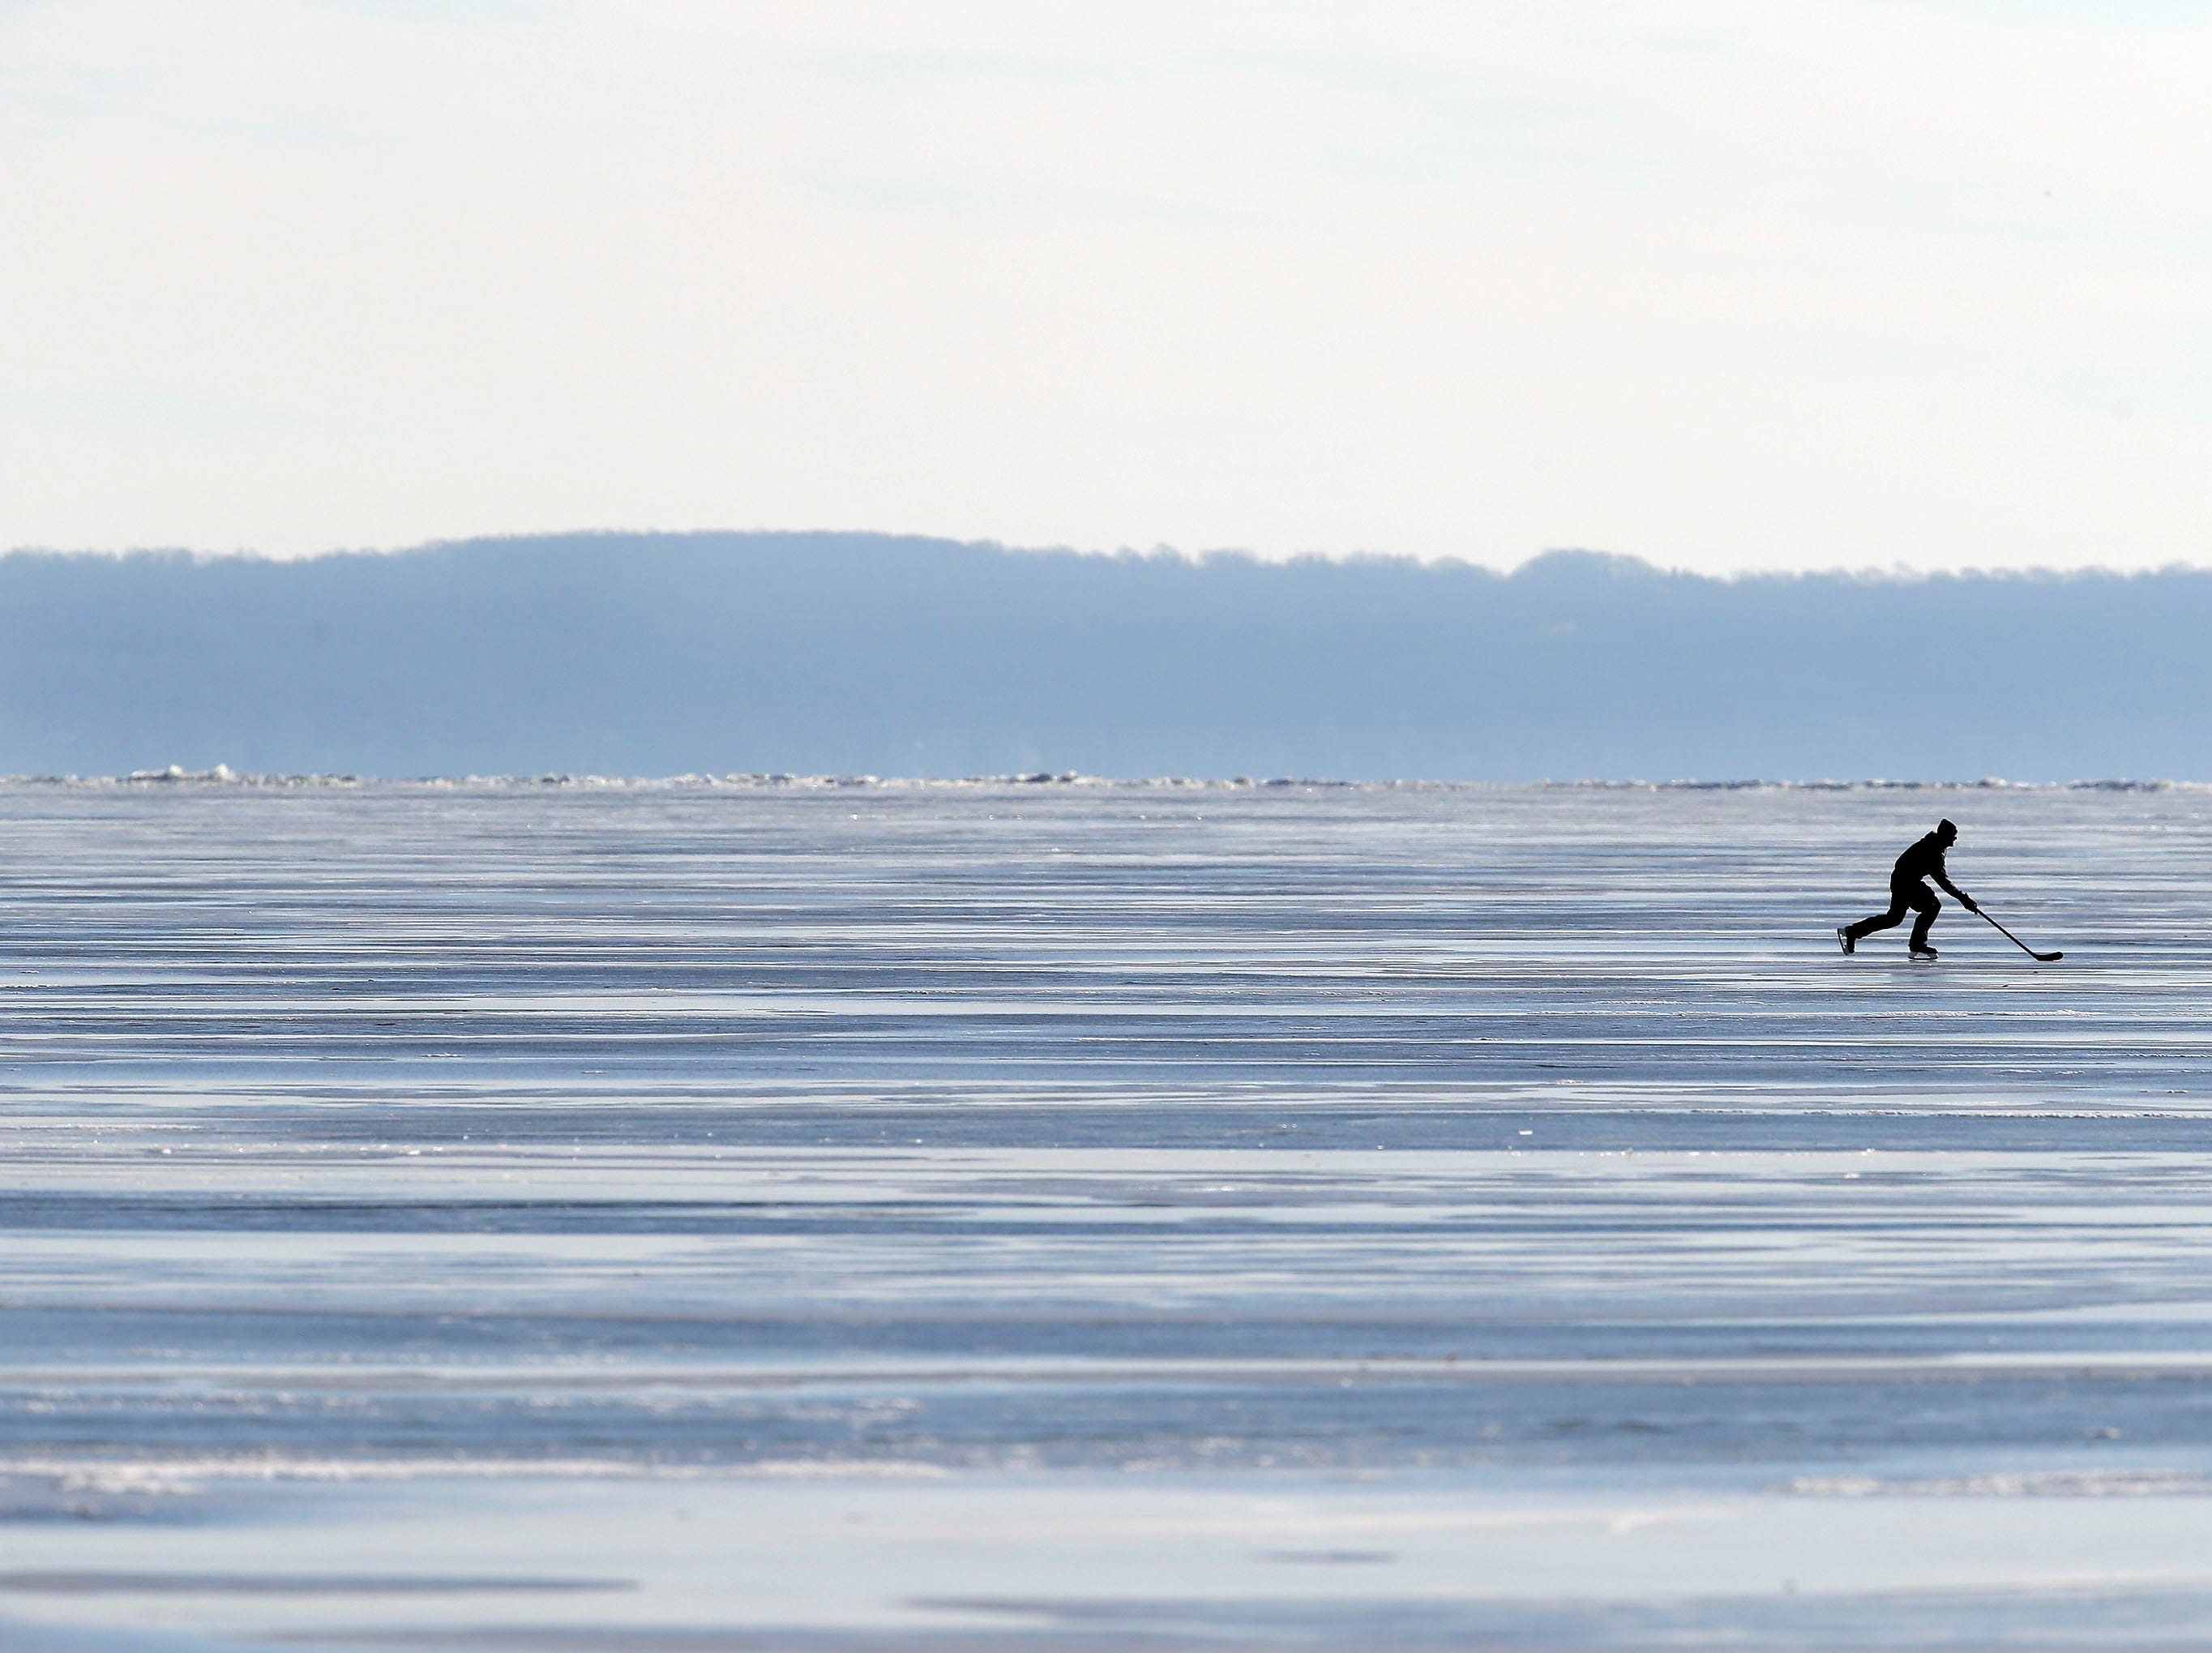 Enterprising or feature hunting is often where we find the images that offer a respite from the hard side of news. I was doing just that on a Sunday and came across a couple of hockey fans on the big lake. One of them broke away and skated on their own for a bit and offered an image of a winter's day in Wisconsin.